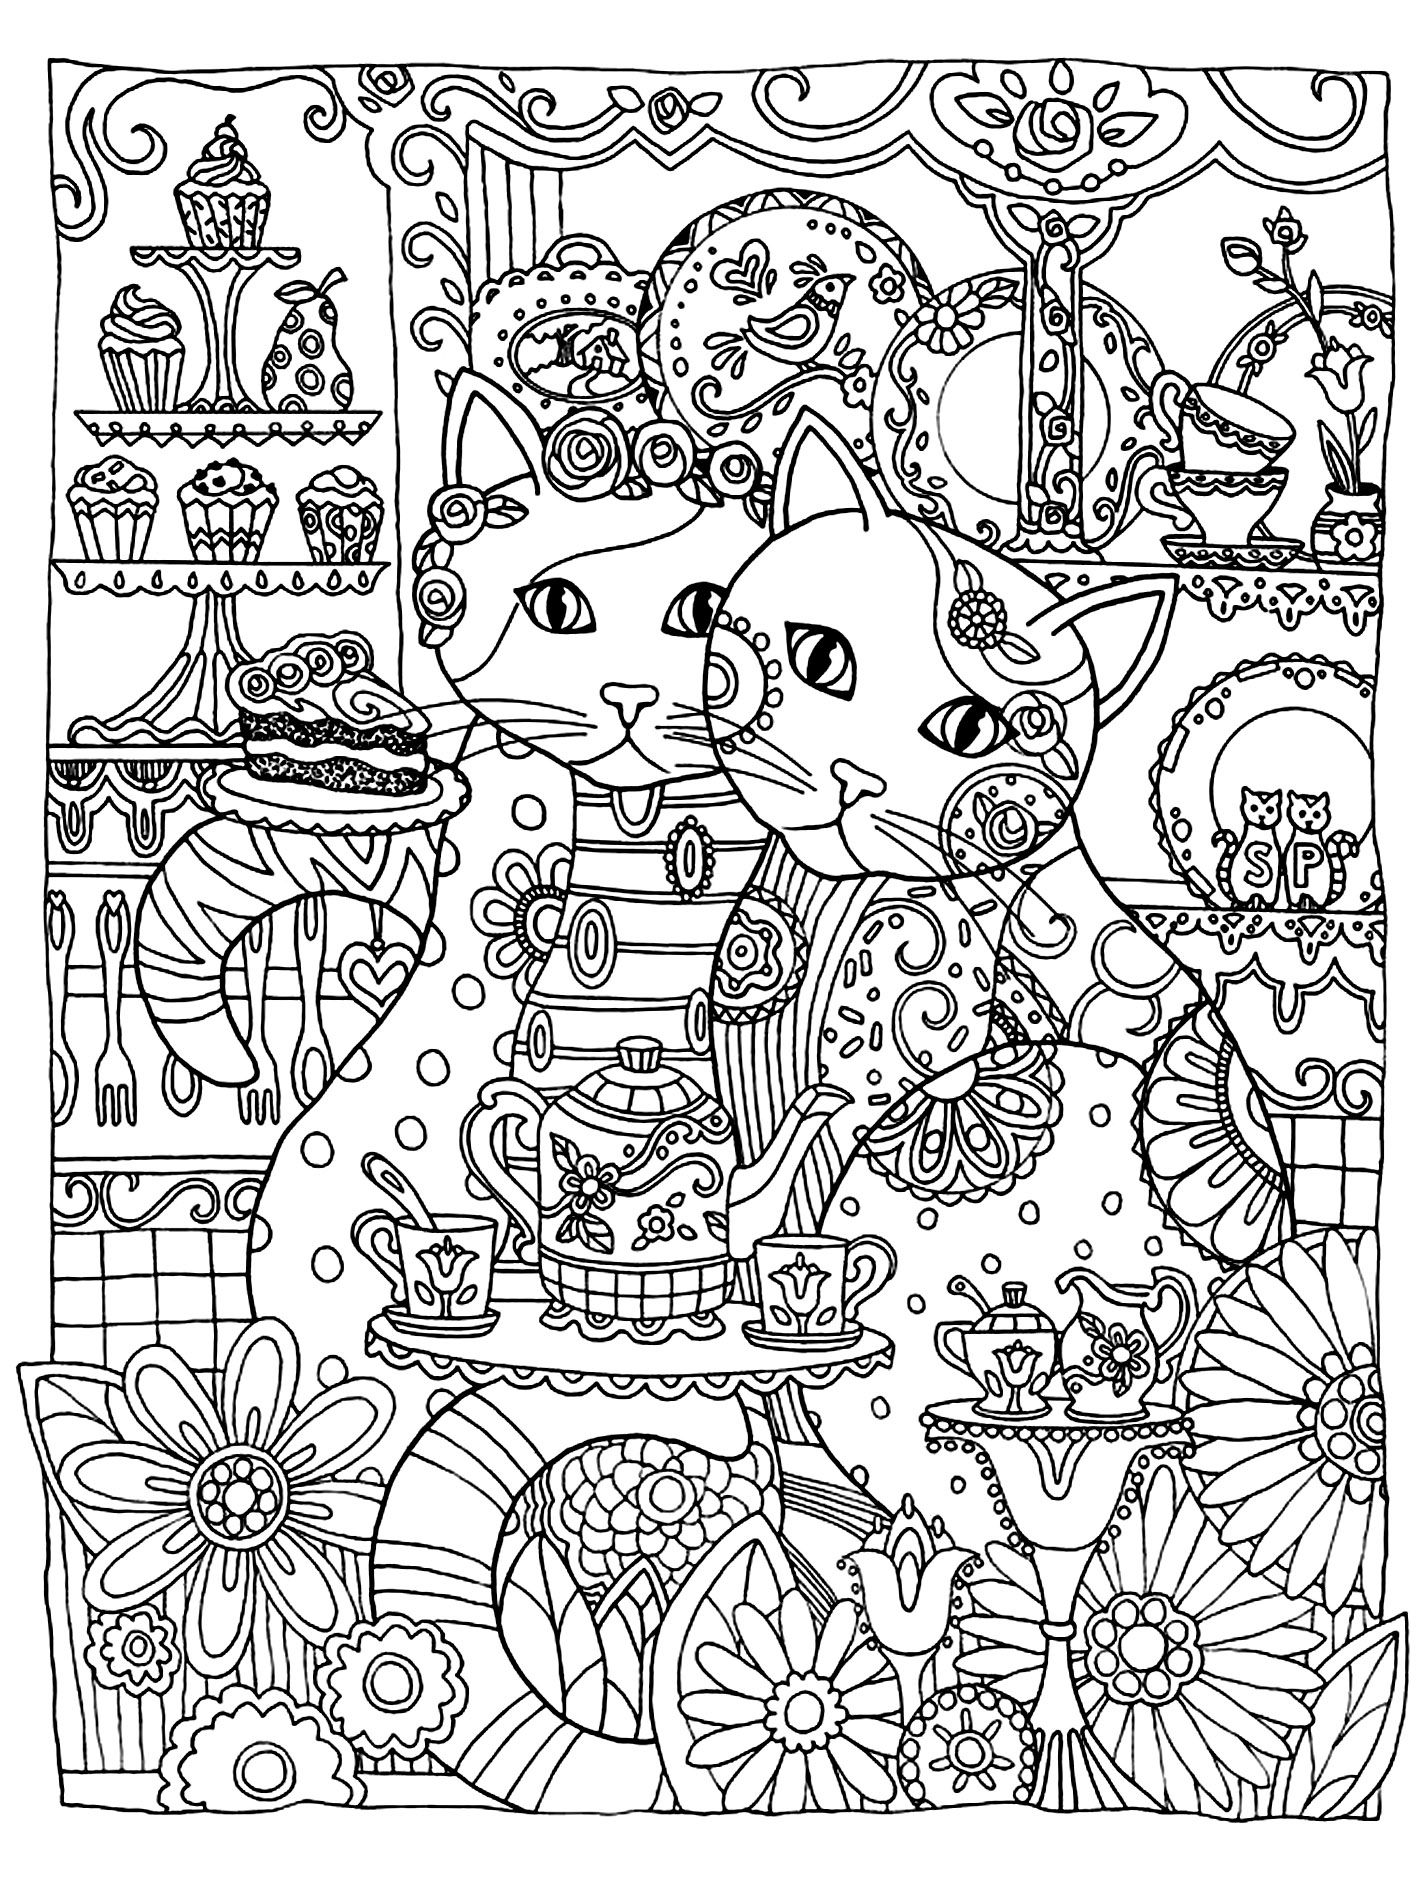 Free coloring page coloring adult two cute cats Two loving cats